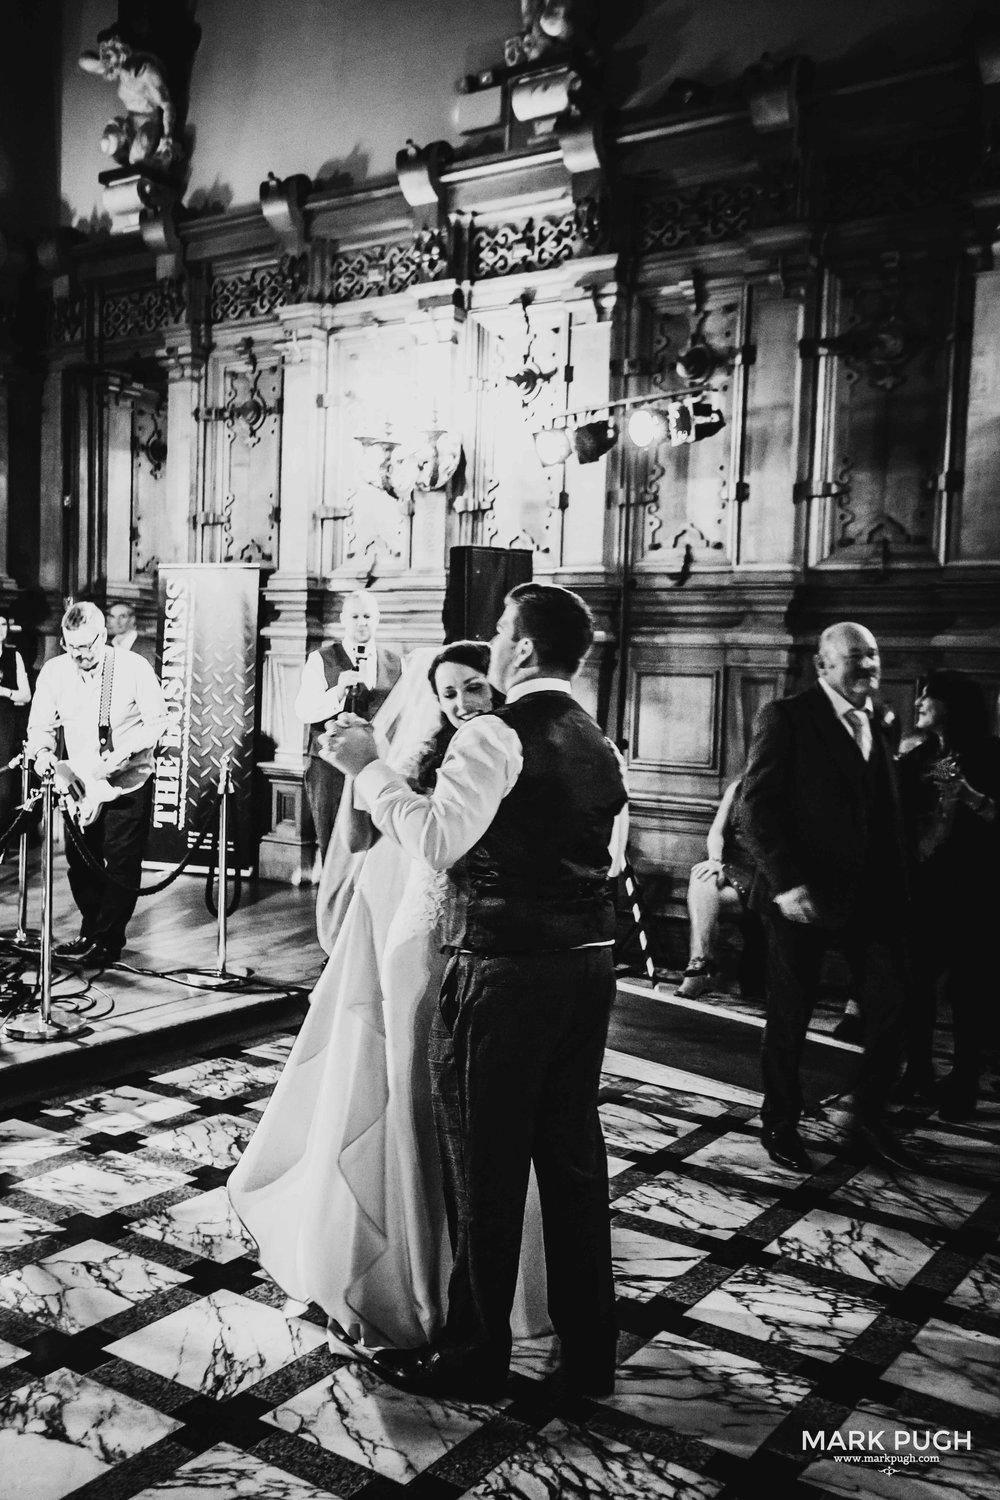 164 - Lauren and Sam - fineART wedding photography at Harlaxton Manor by www.markpugh.com Mark Pugh of www.mpmedia.co.uk_.JPG